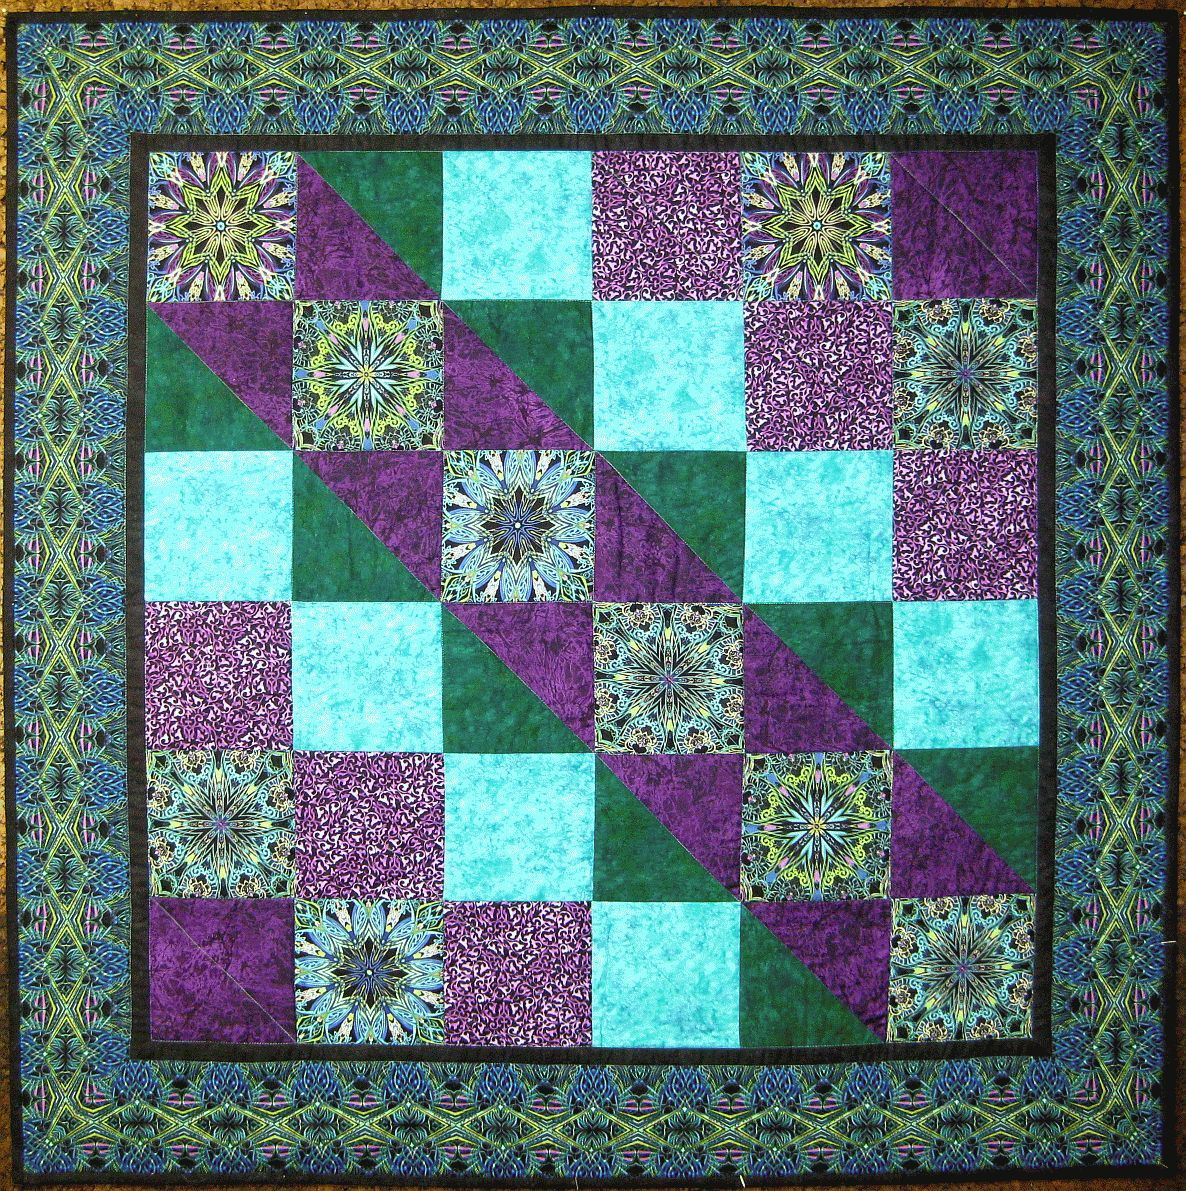 Beginner Quilt Patterns For Quilting: Quilt+Block+Patterns+for+Beginners